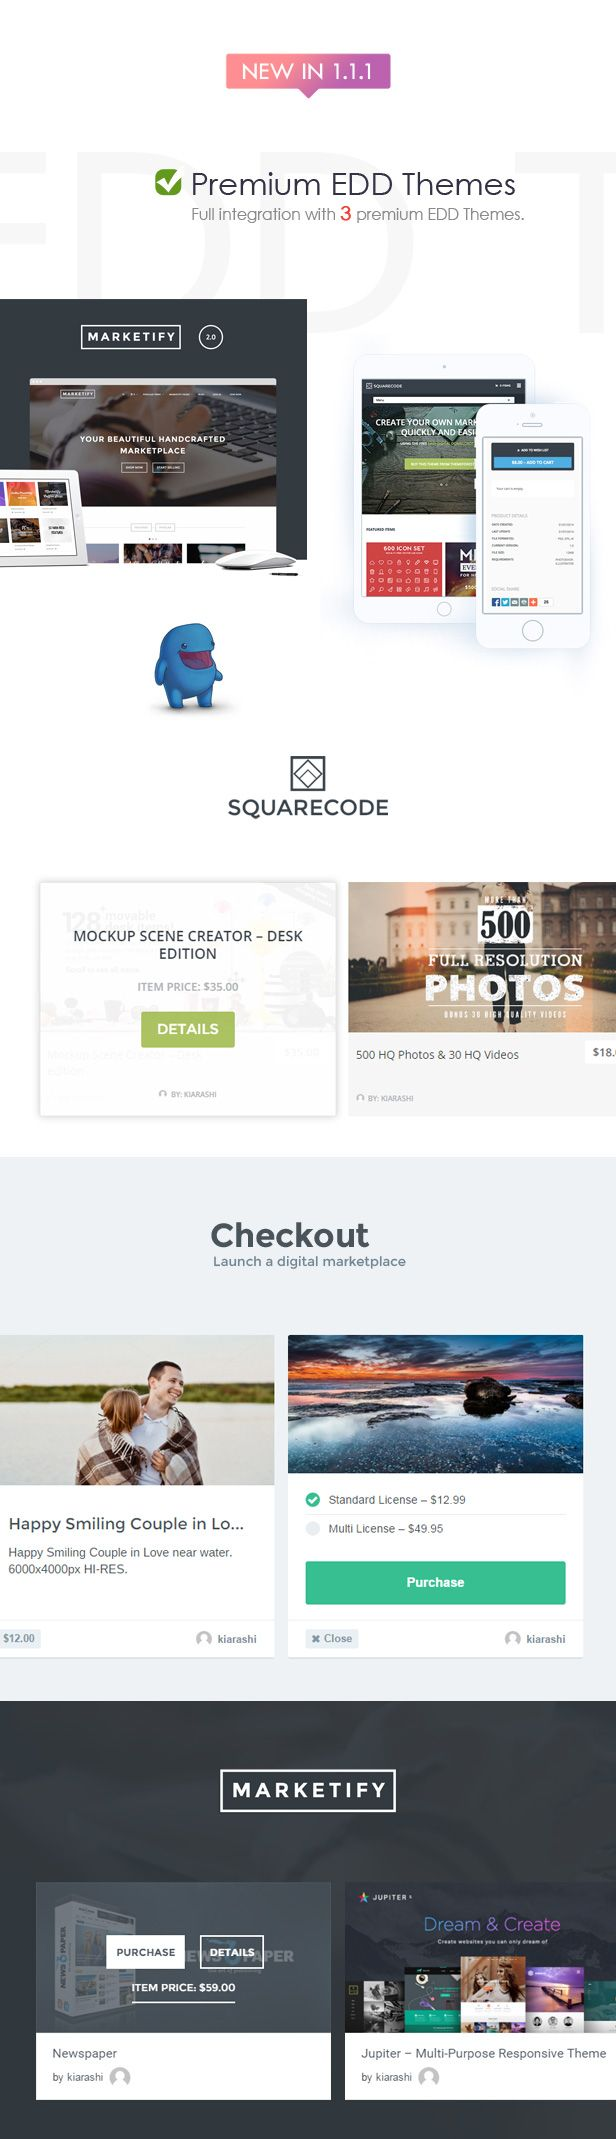 Integration with new EDD themes! #Marketify, #SquareCode, and #Checkout